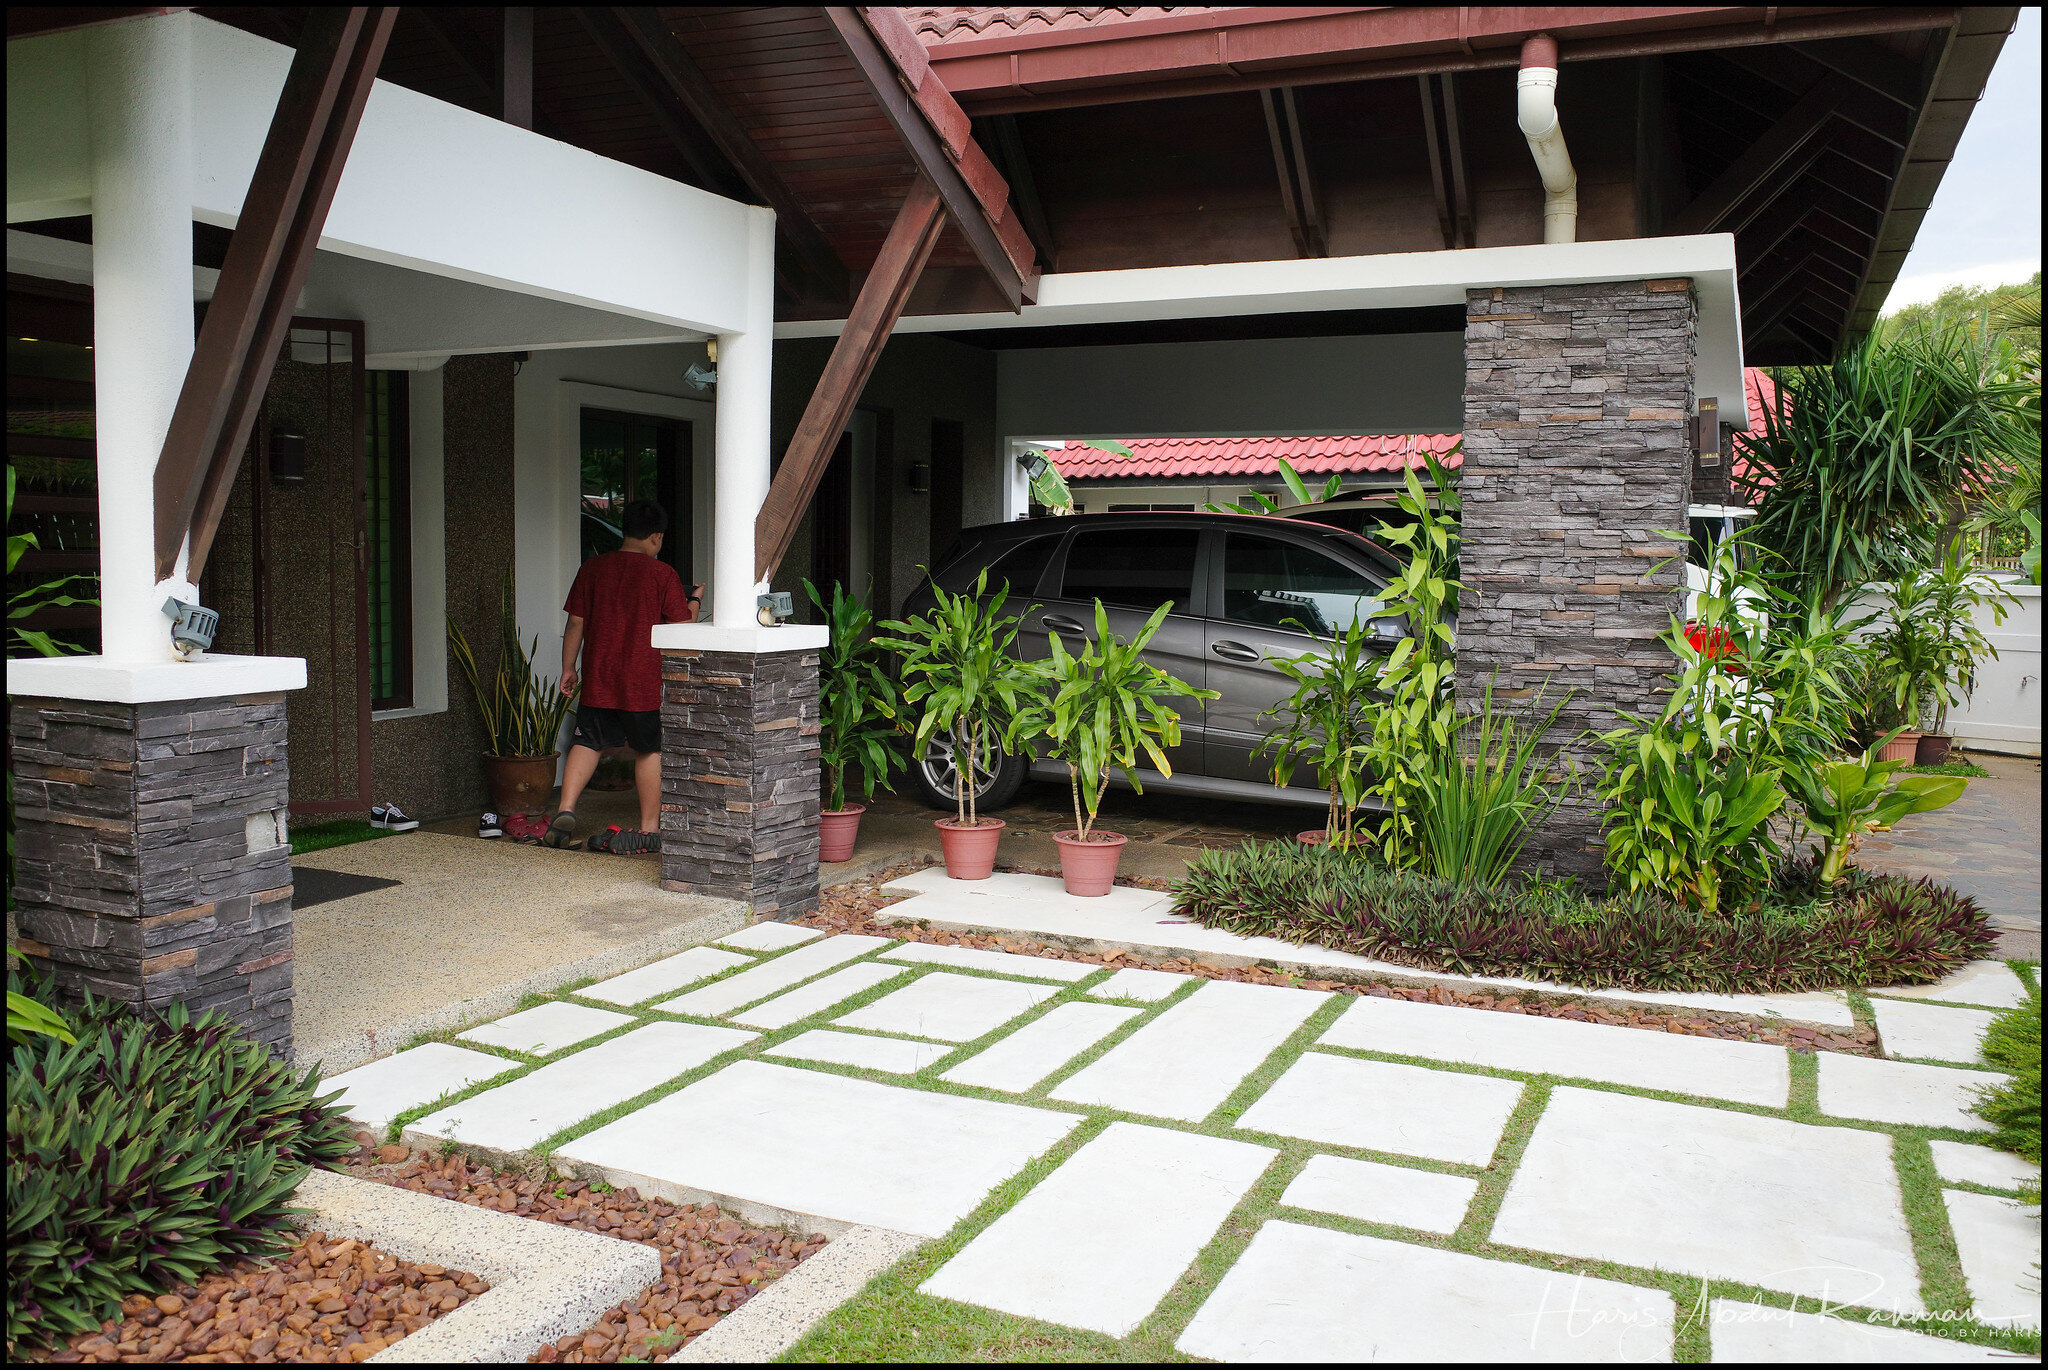 The front porch with Azie's and Syahril's car in the driveway